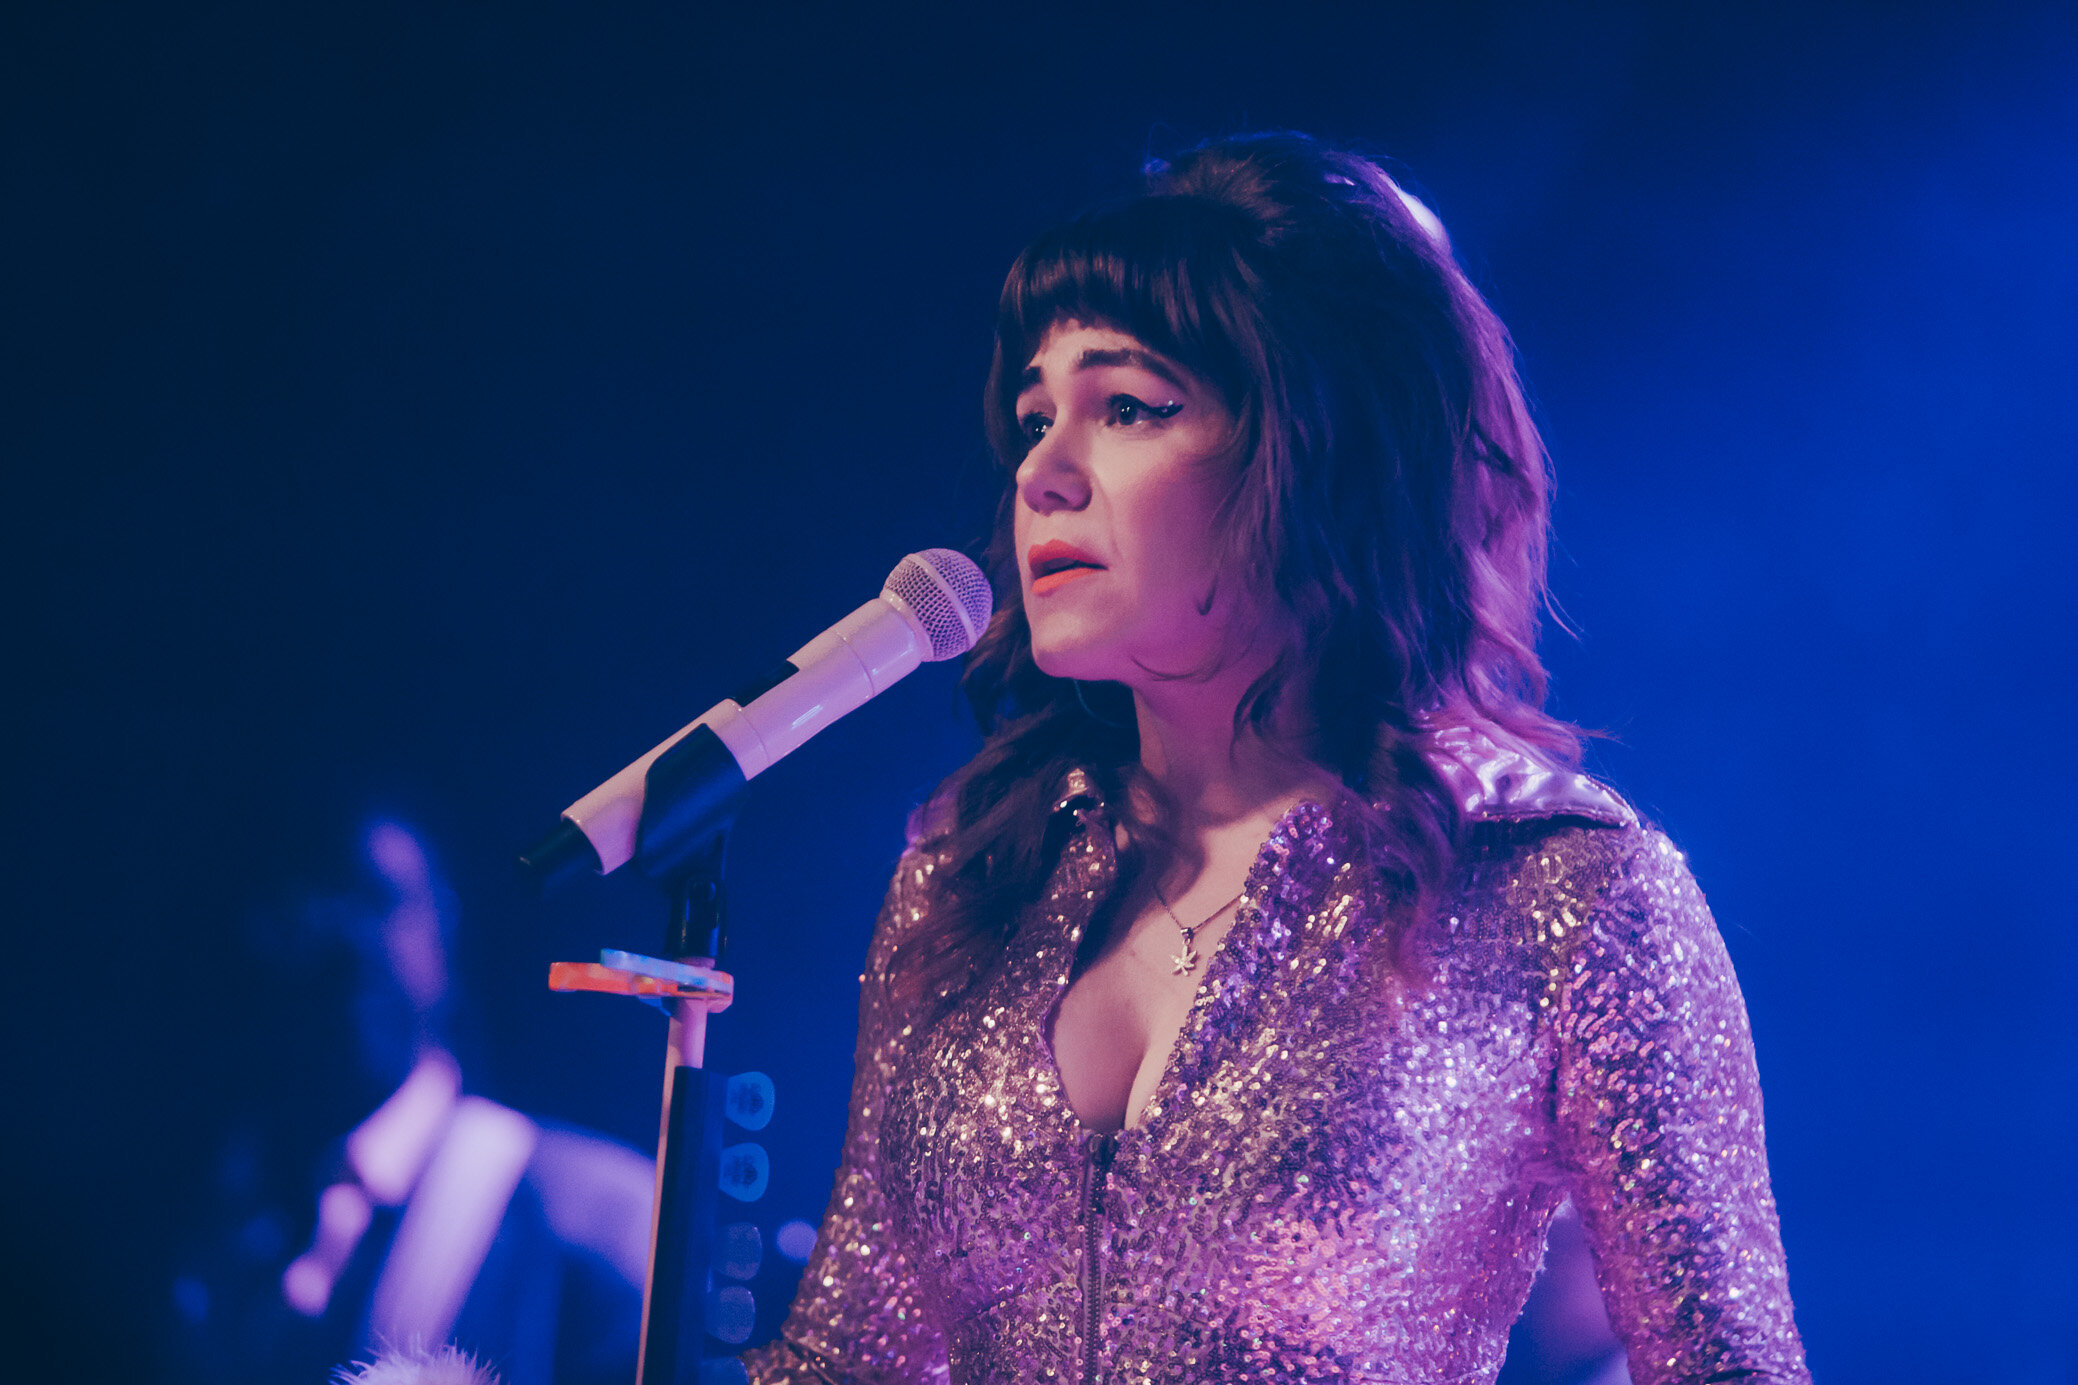 Jenny Lewis performs in concert at Saturn Birmingham in Birmingham, Alabama on September 14th, 2019. (Photo by David A. Smith / DSmithScenes)